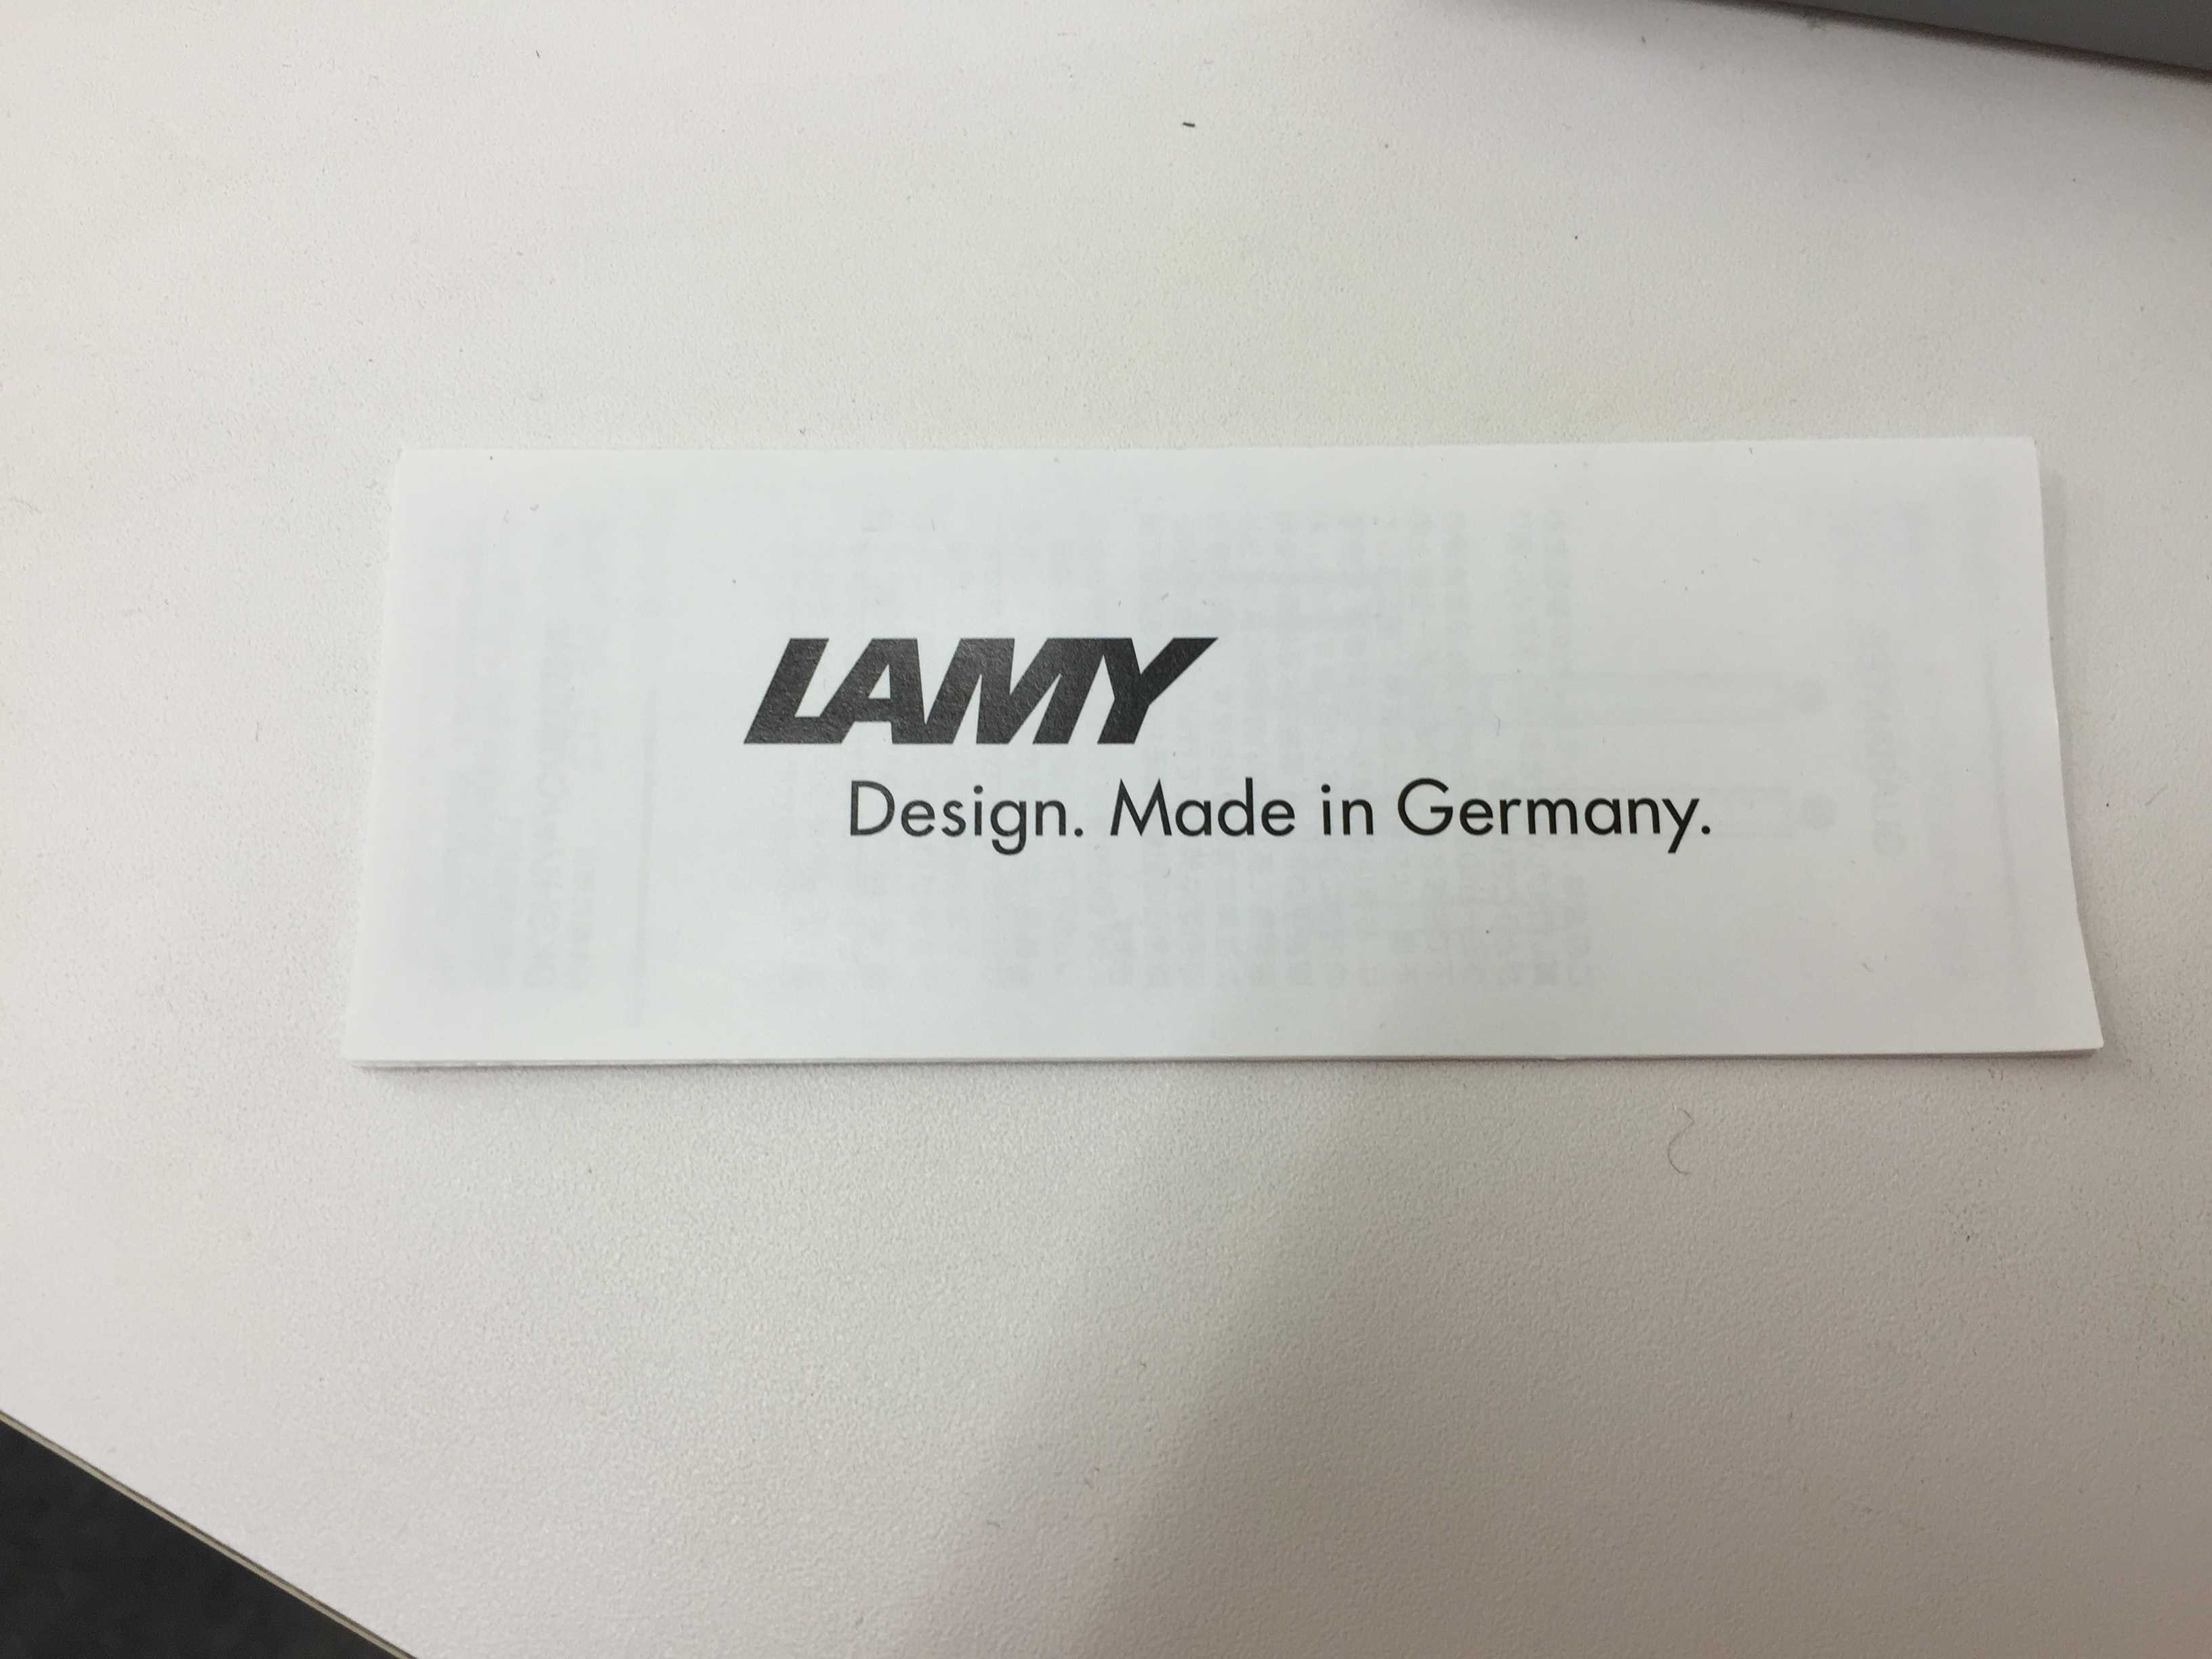 LAMY Design. Made in Germany.